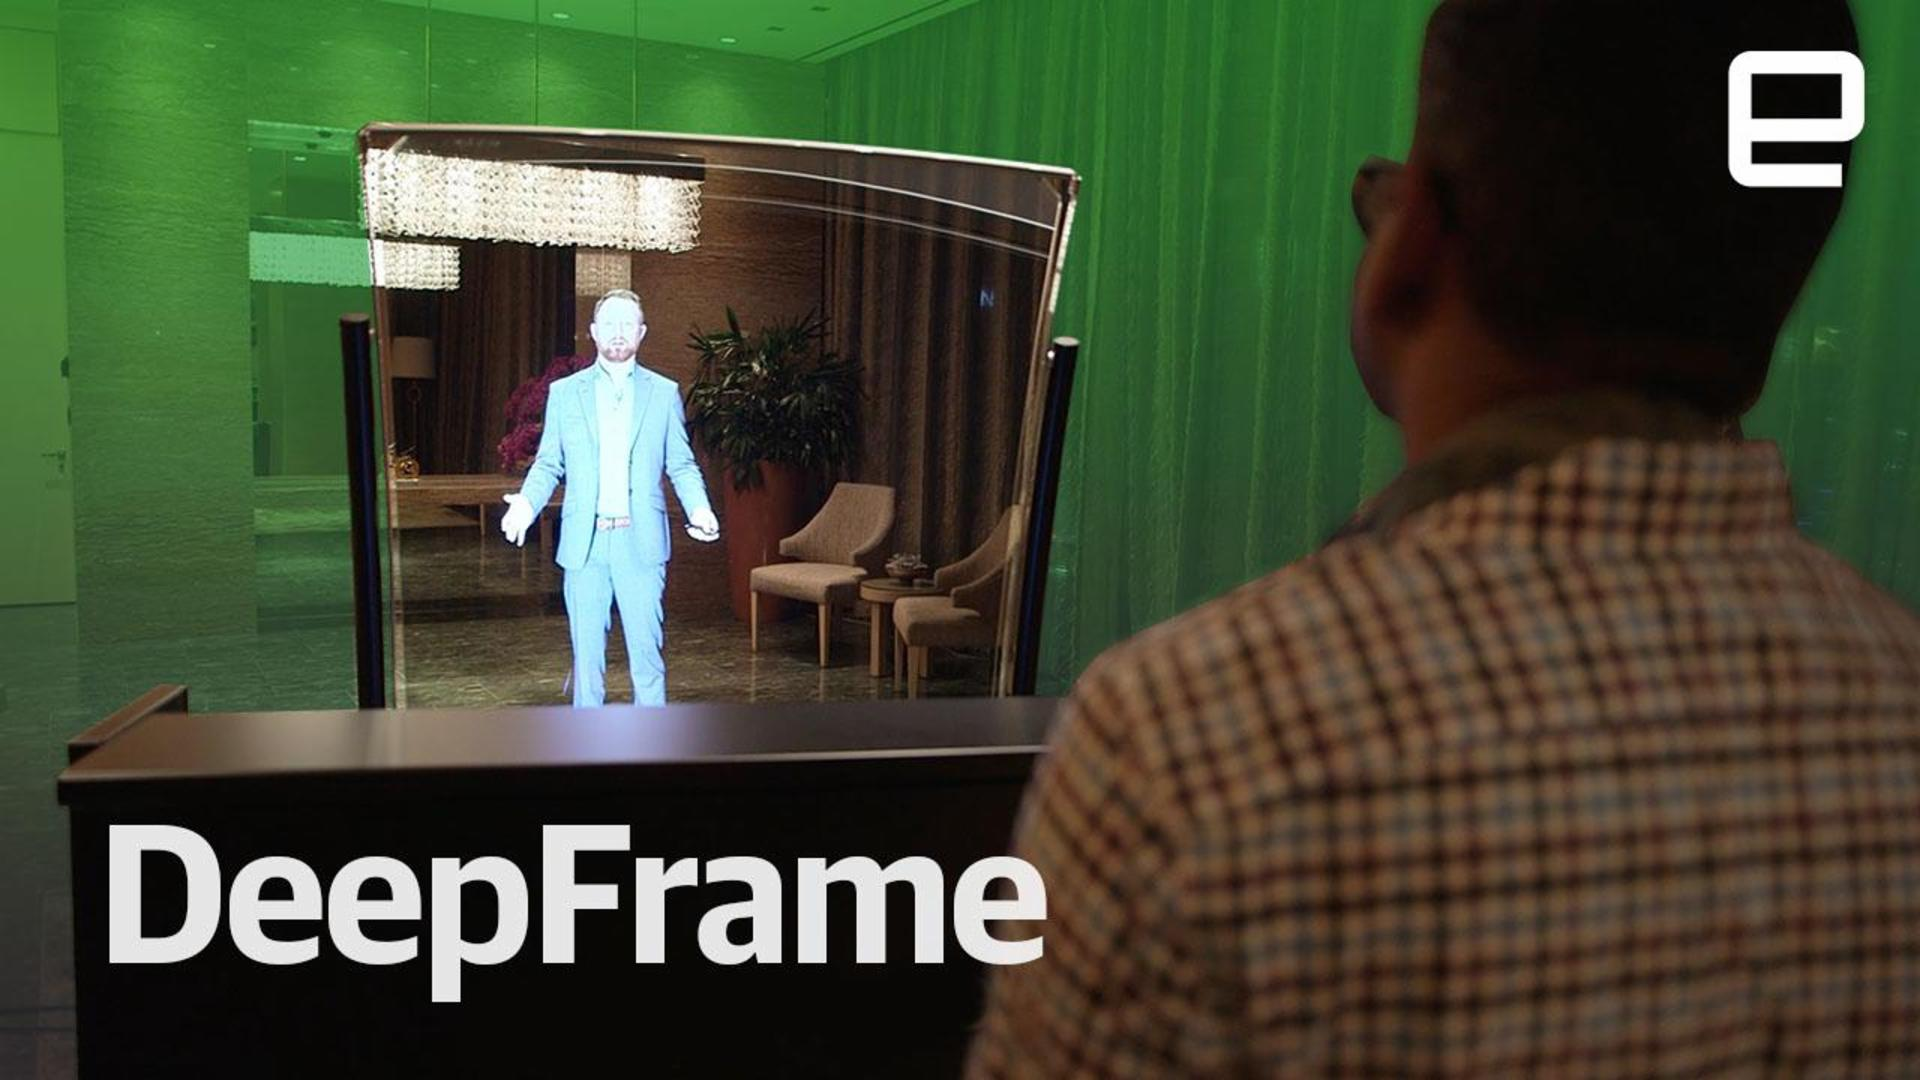 DeepFrame brings augmented reality to a huge screen